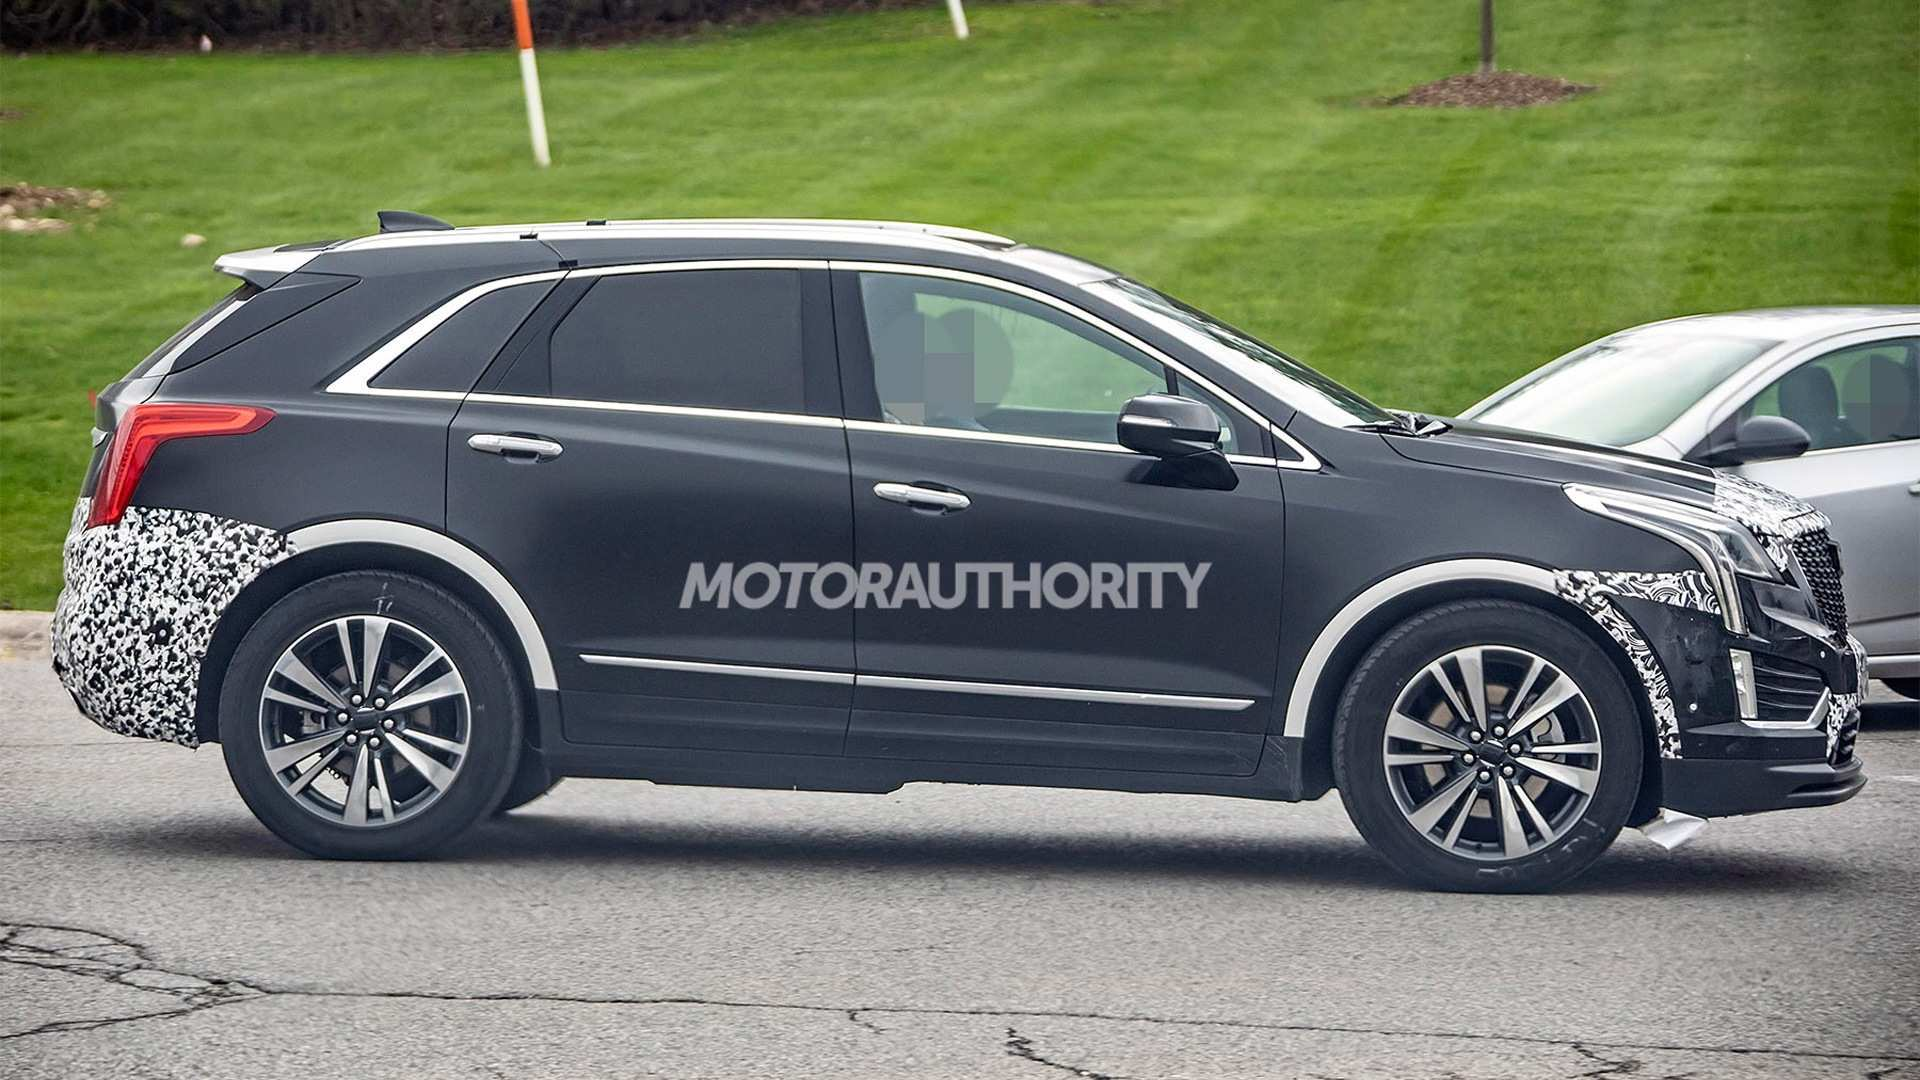 30 A 2020 Spy Shots Cadillac Xt5 Specs And Review